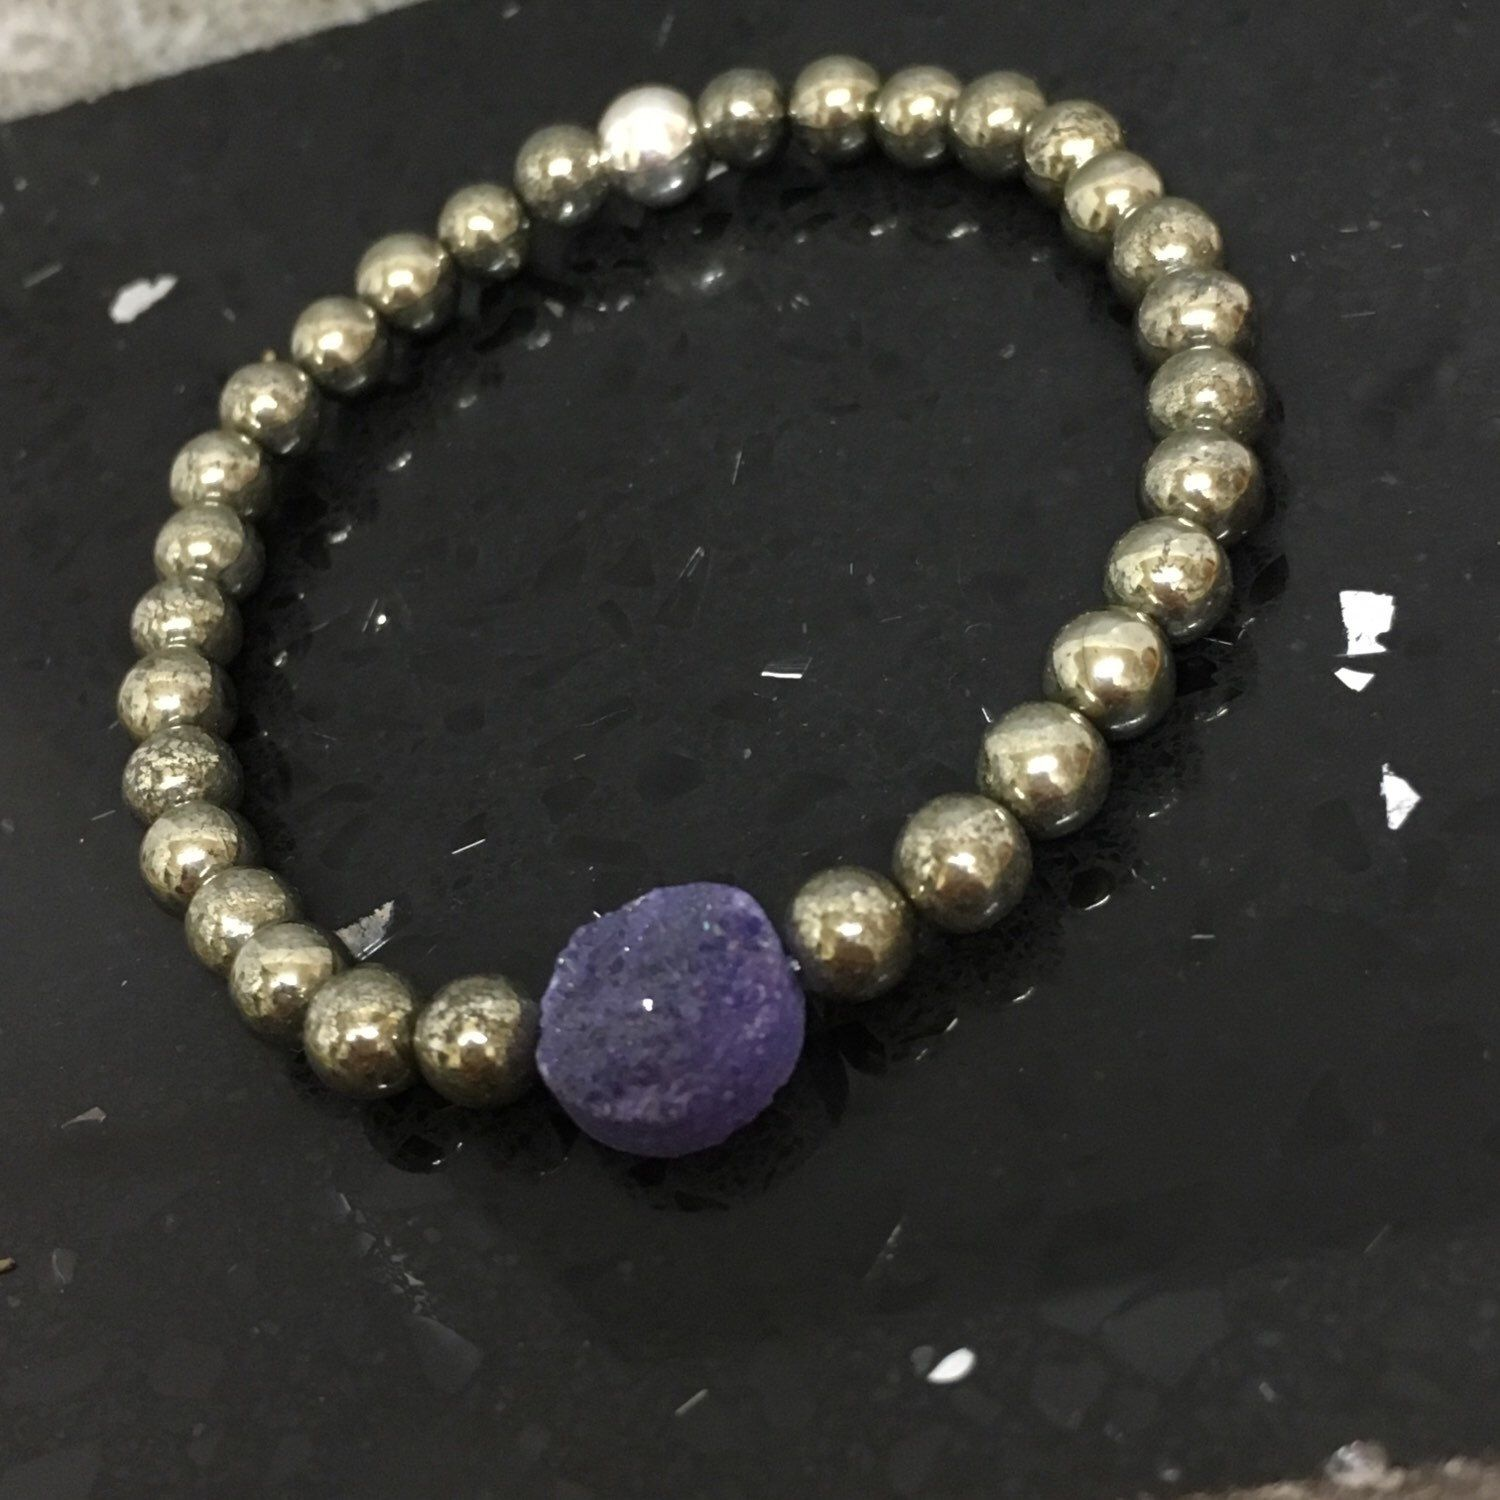 A personal favourite from my Etsy shop https://www.etsy.com/uk/listing/259326836/dark-violet-druzy-quartz-pyrite-fools   #shopsmall #gemstone #Etsy #Accessories #EtsyGifts #jewellery #luxurious #Bohemian #EtsyFinds #gift #gemstonegifts